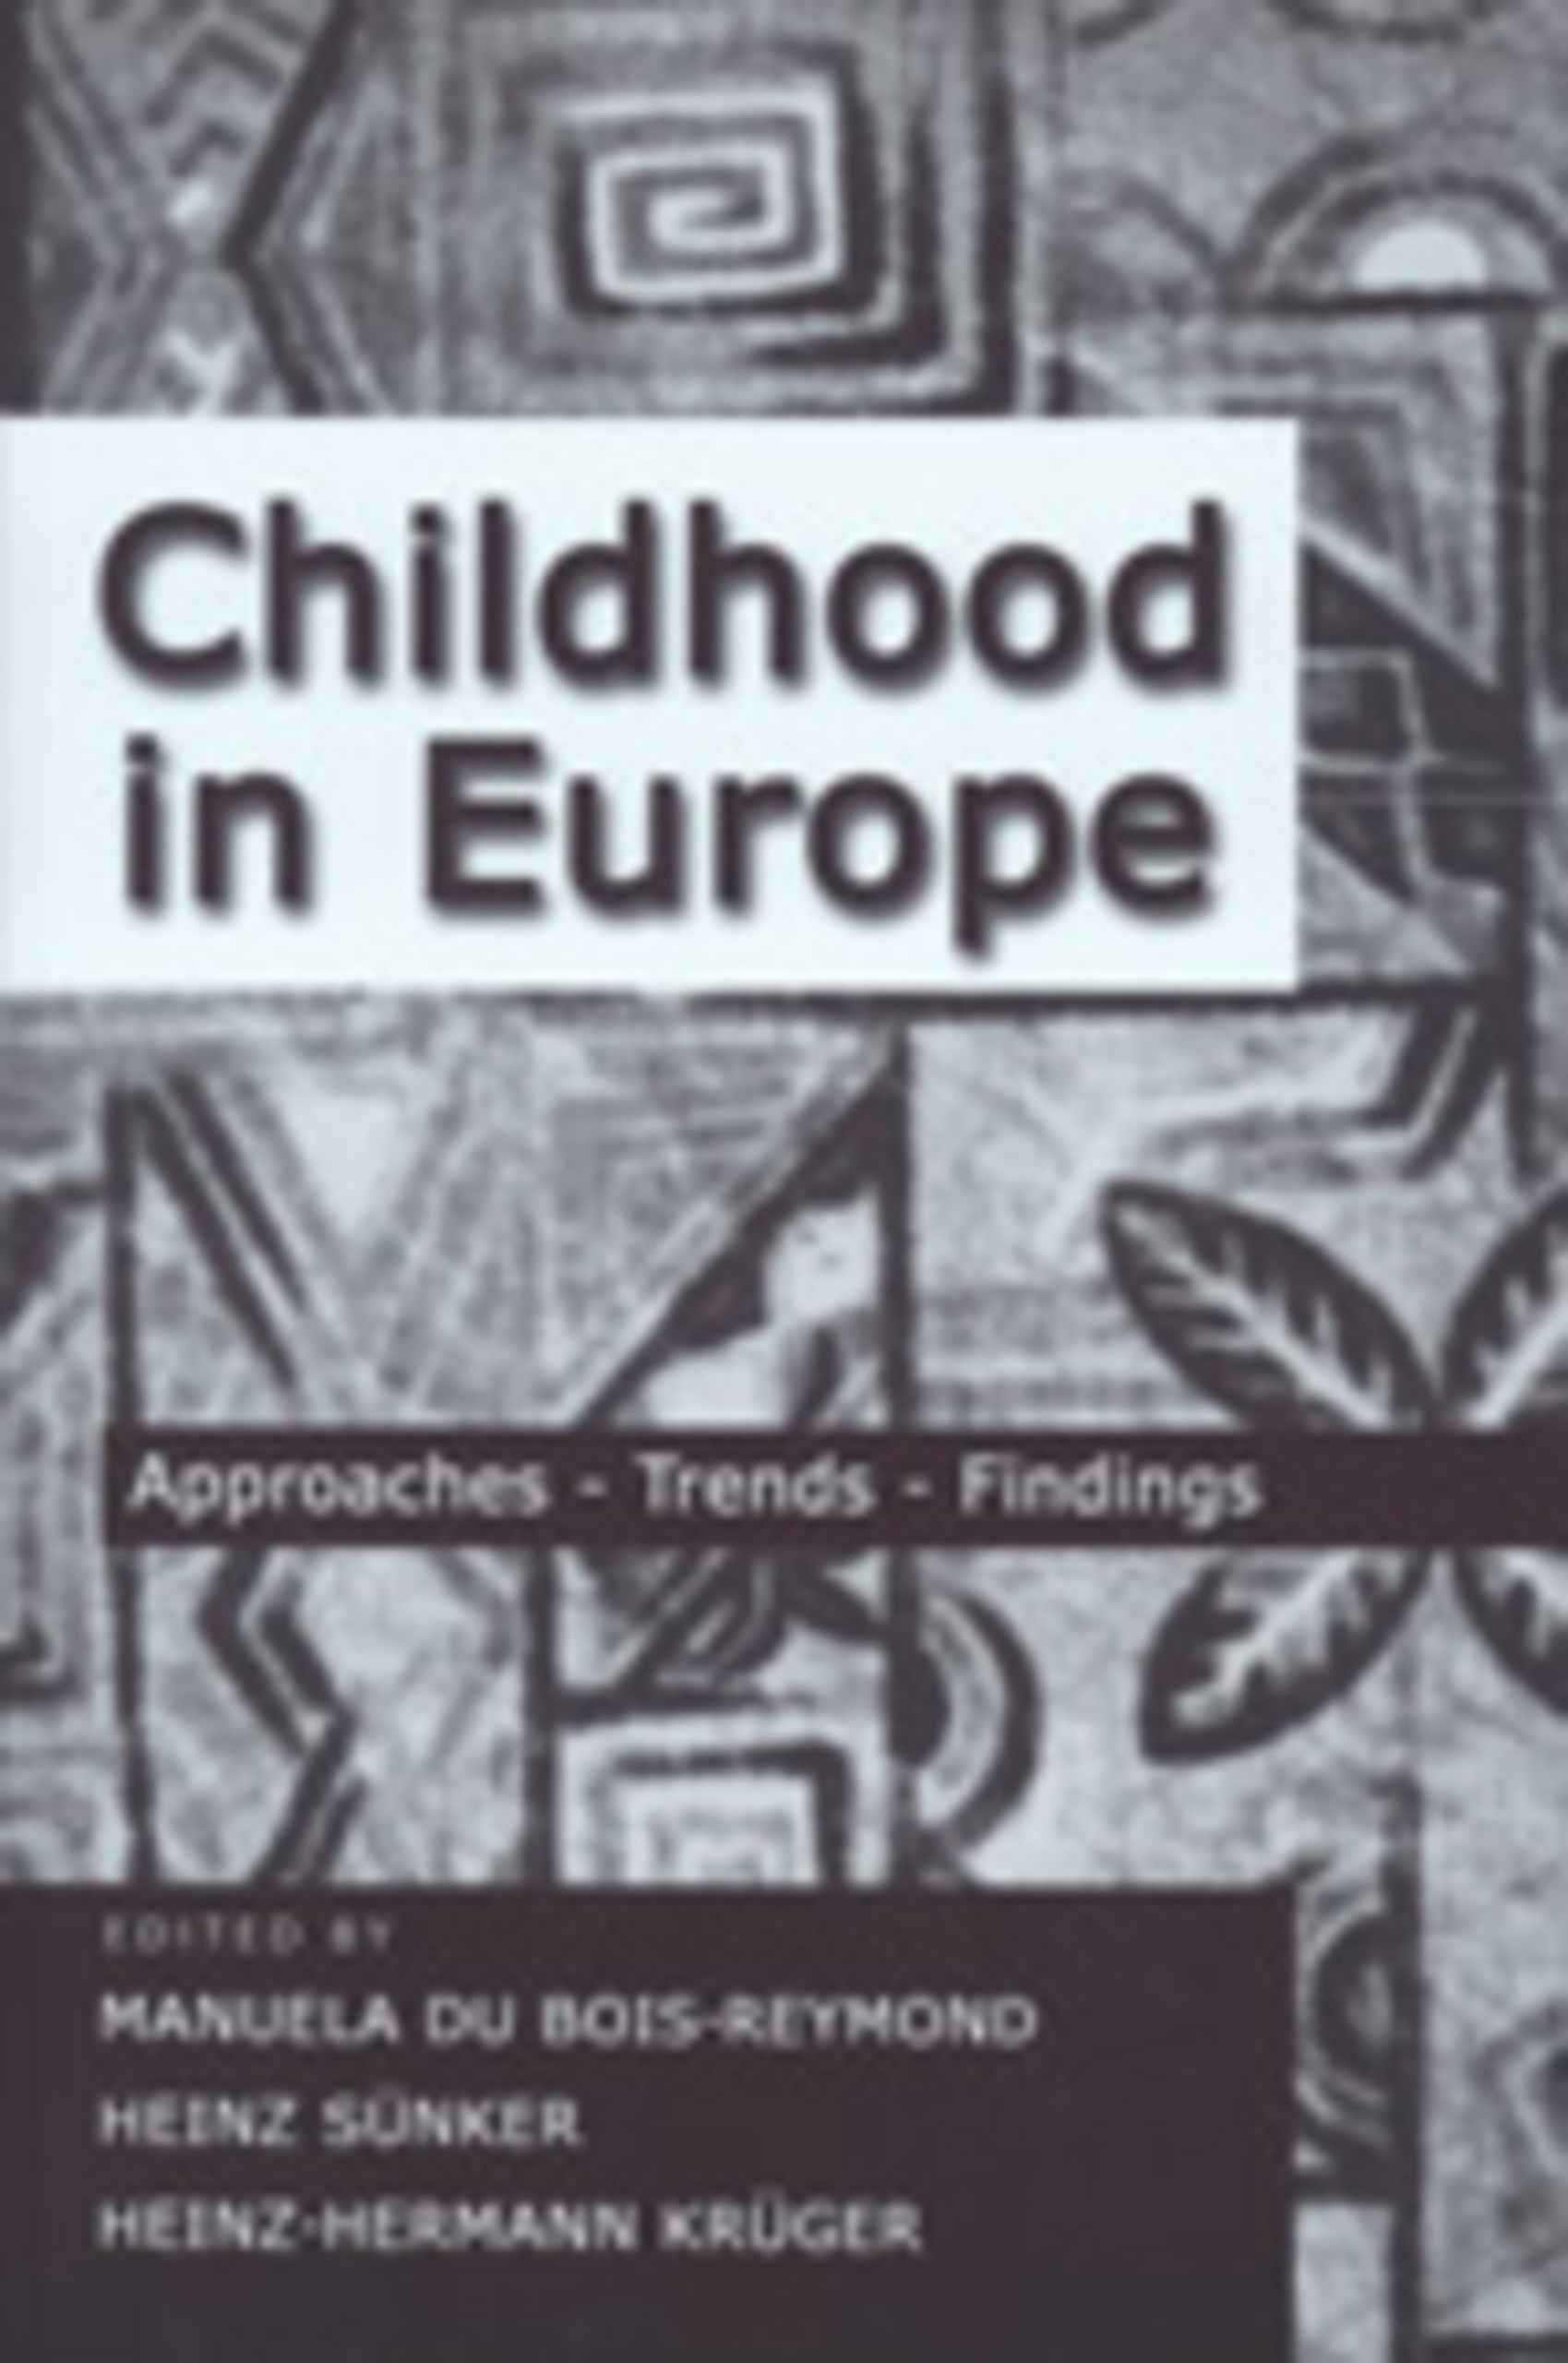 Title: Childhood in Europe